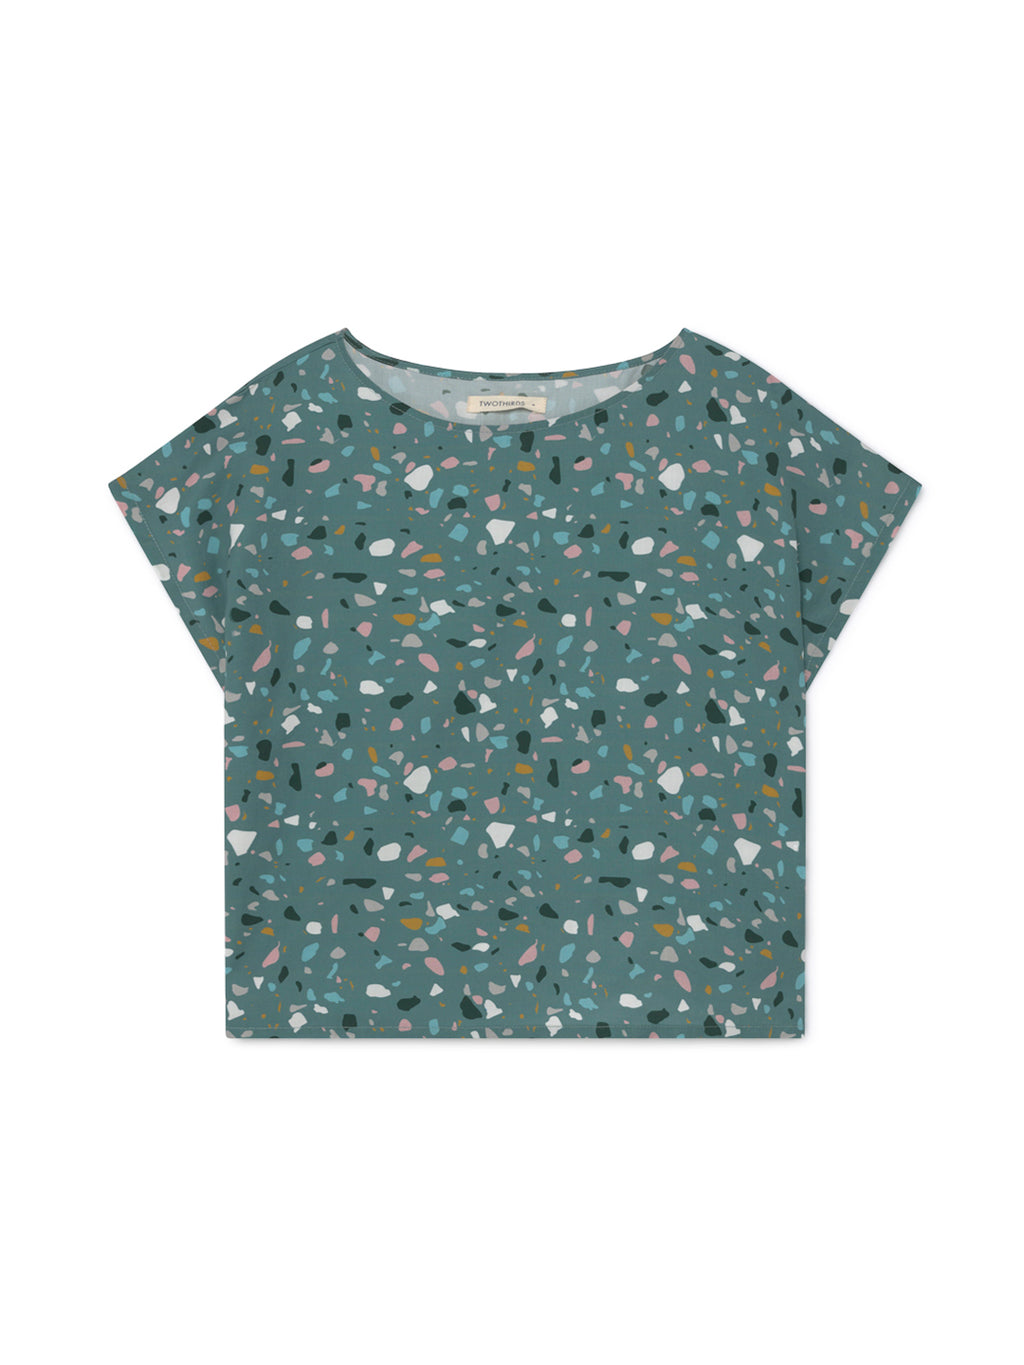 TWOTHIRDS Womens Top: Santa Ines - Dusty Blue Terrazo Print front